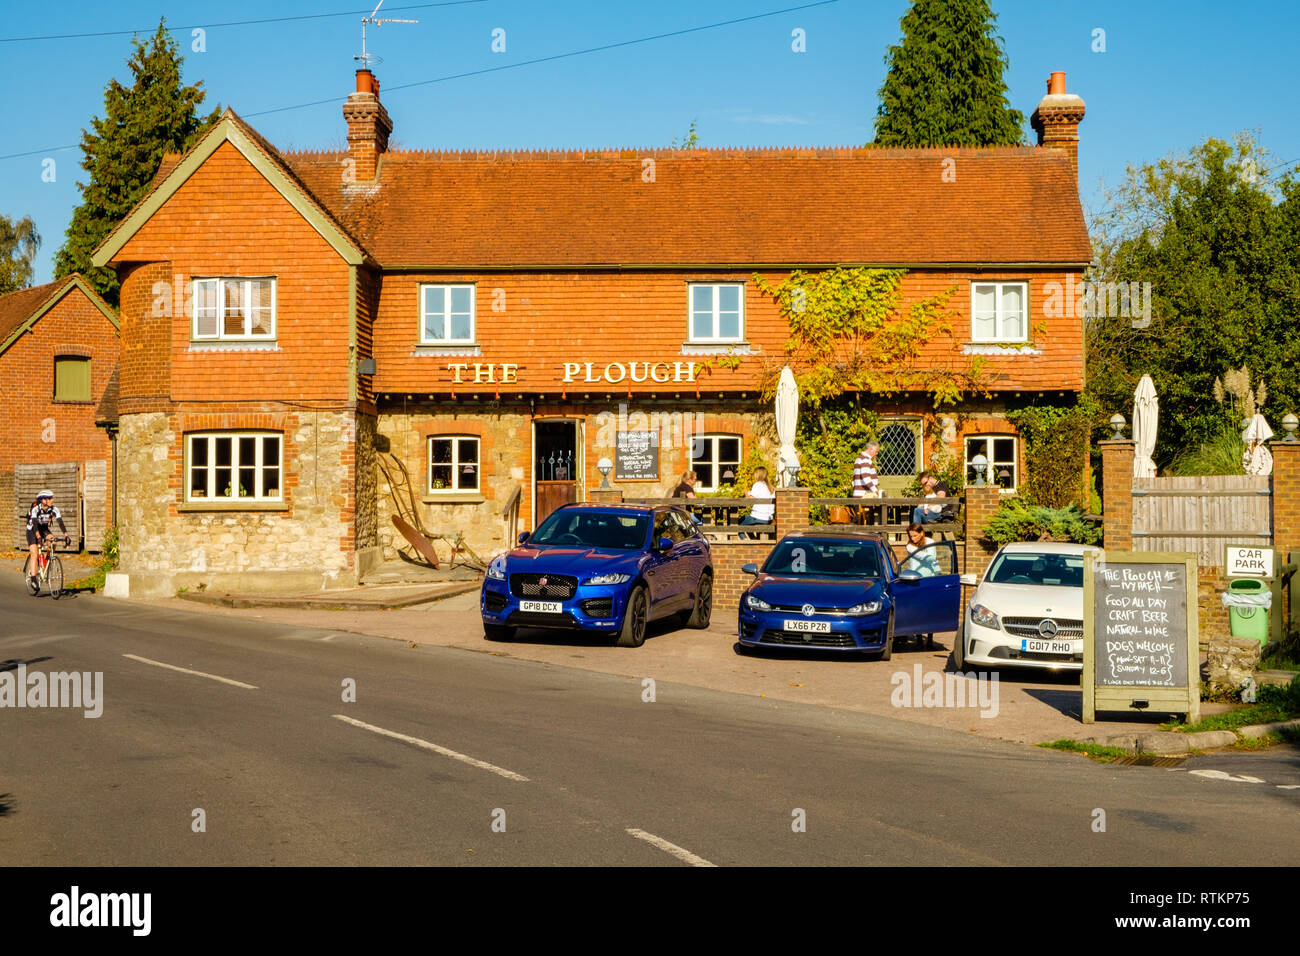 The Plough Public House, High Cross Road, Ivy Hatch, Kent - Stock Image